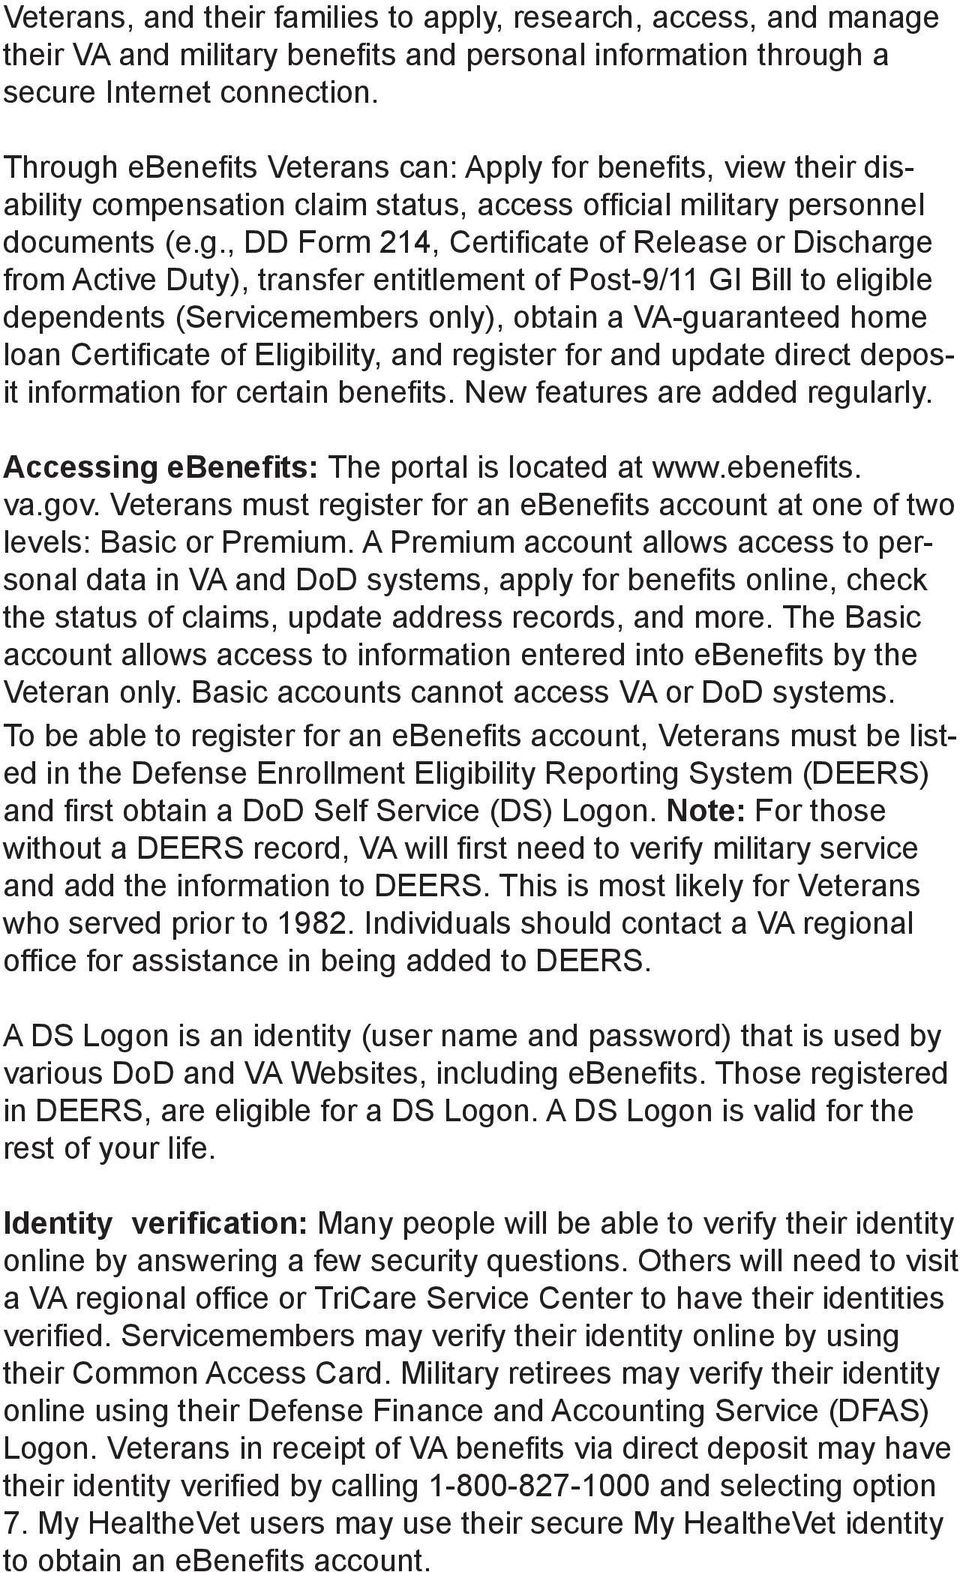 ebenefits Veterans can: Apply for benefits, view their disability compensation claim status, access official military personnel documents (e.g.